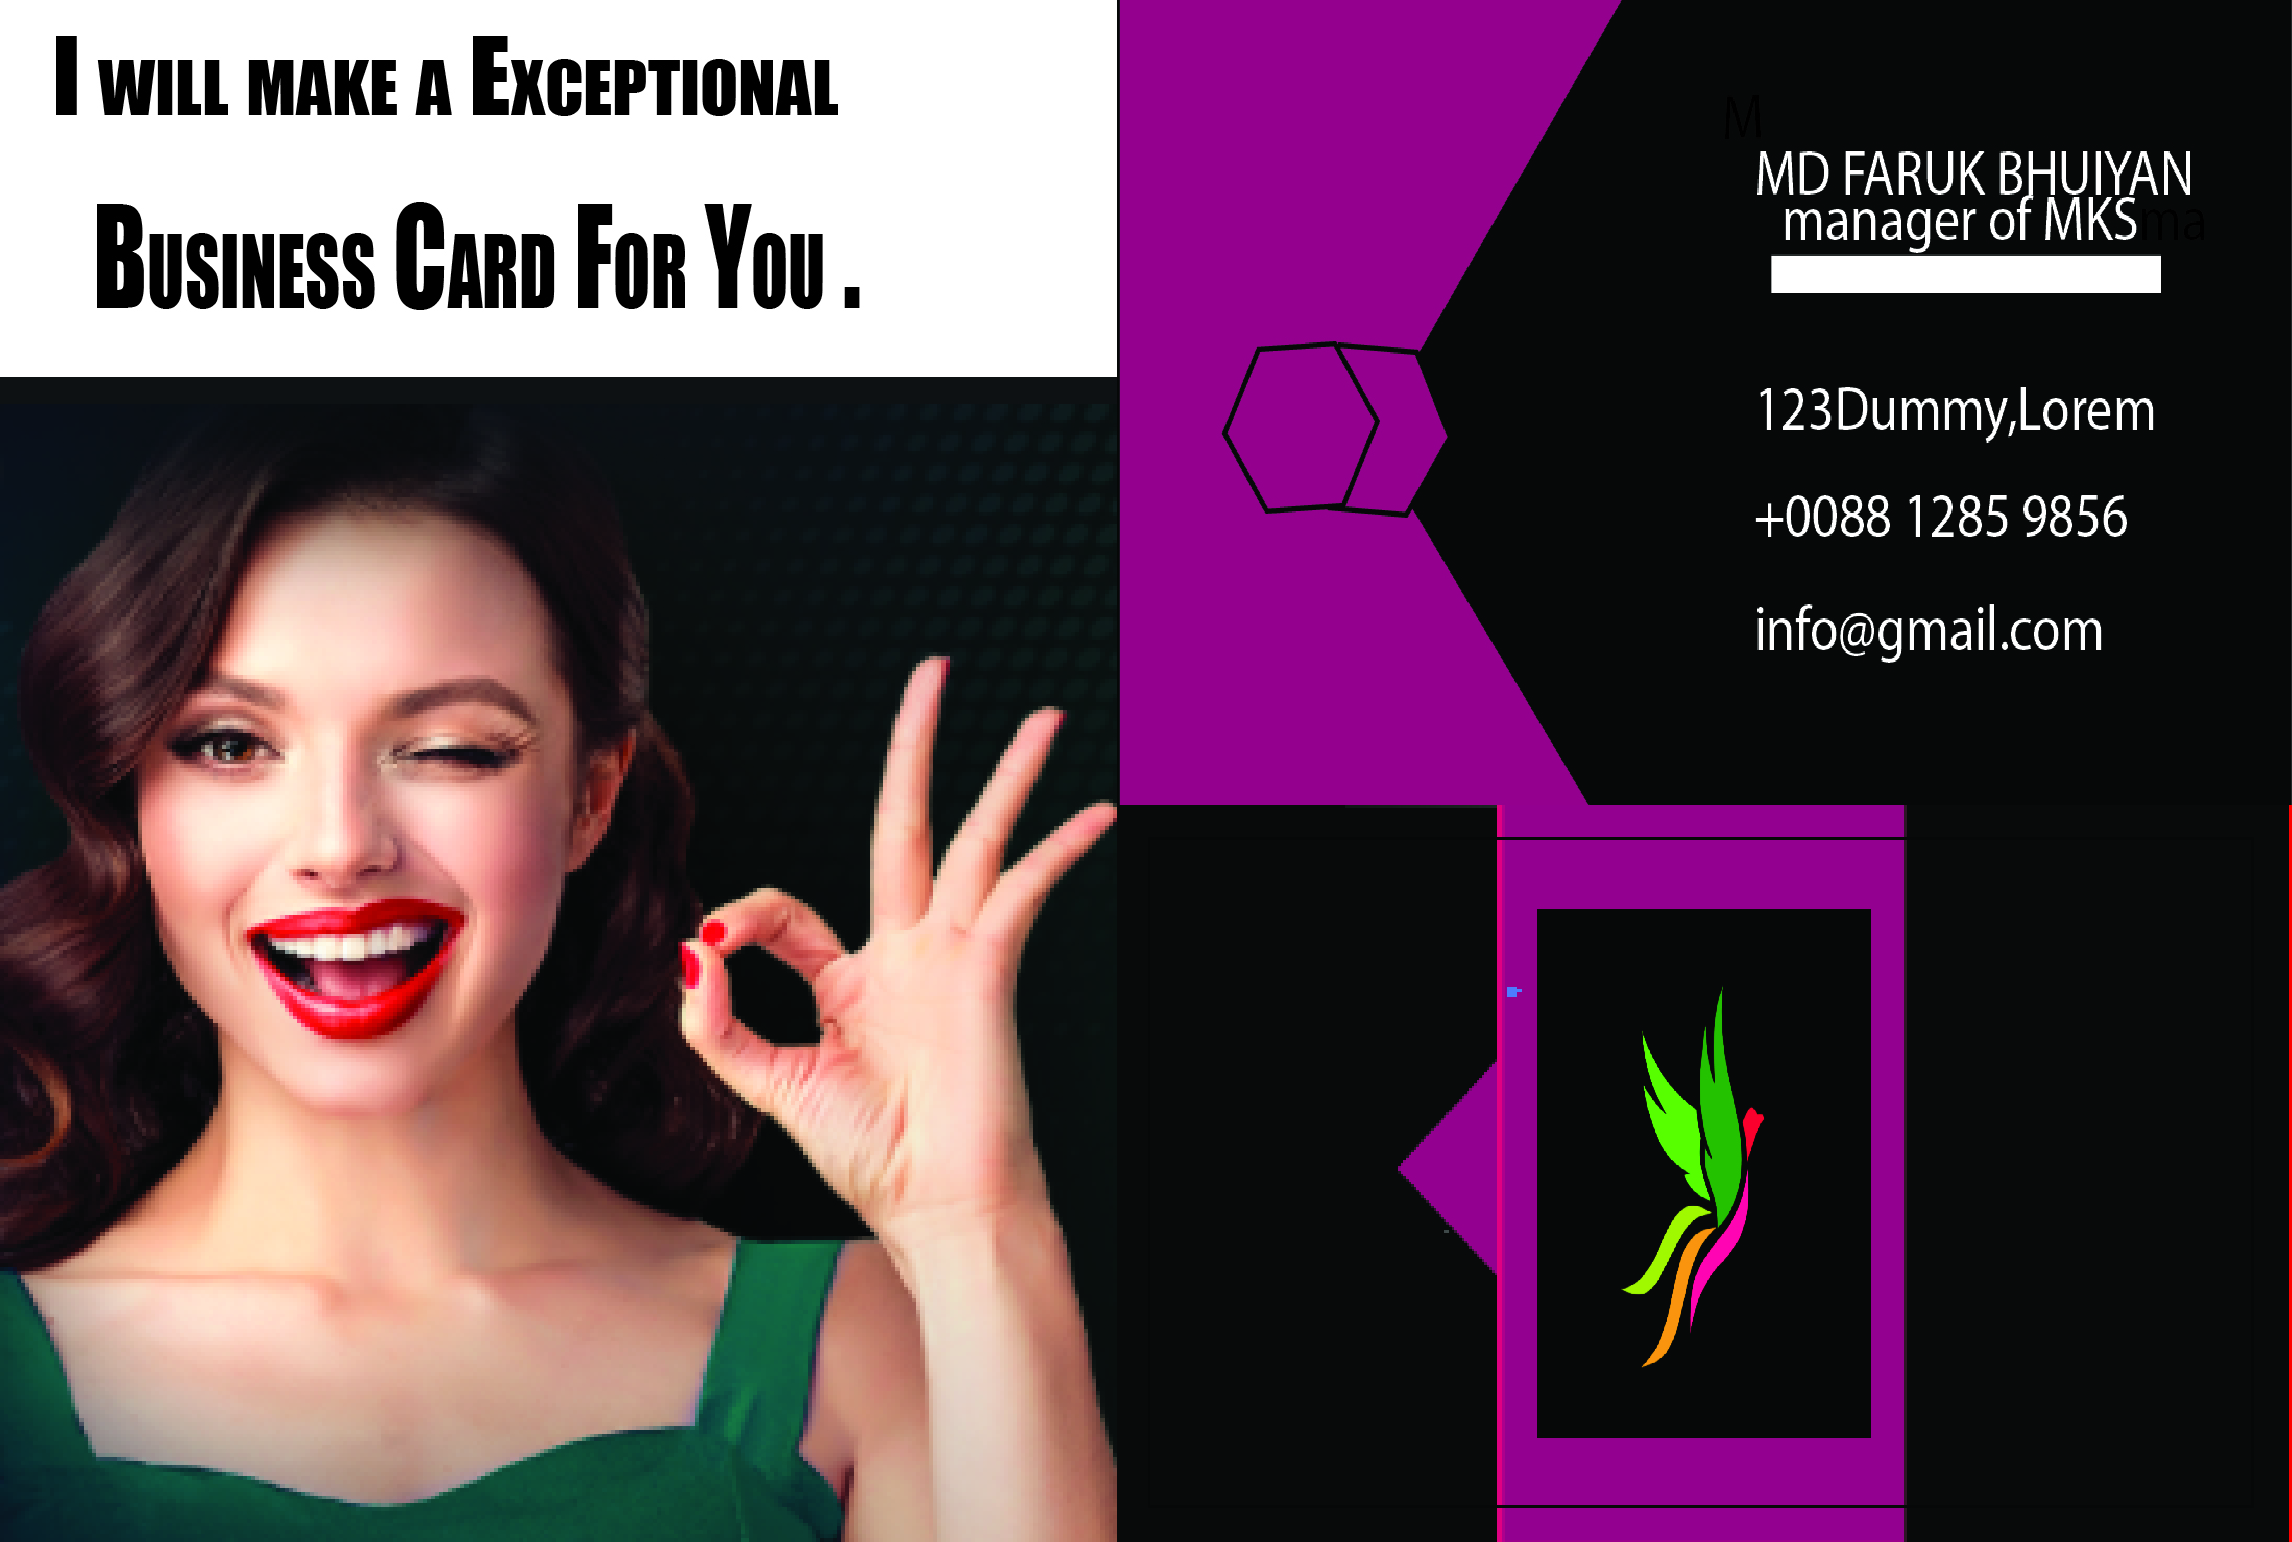 i will make a exceptional business card for you.